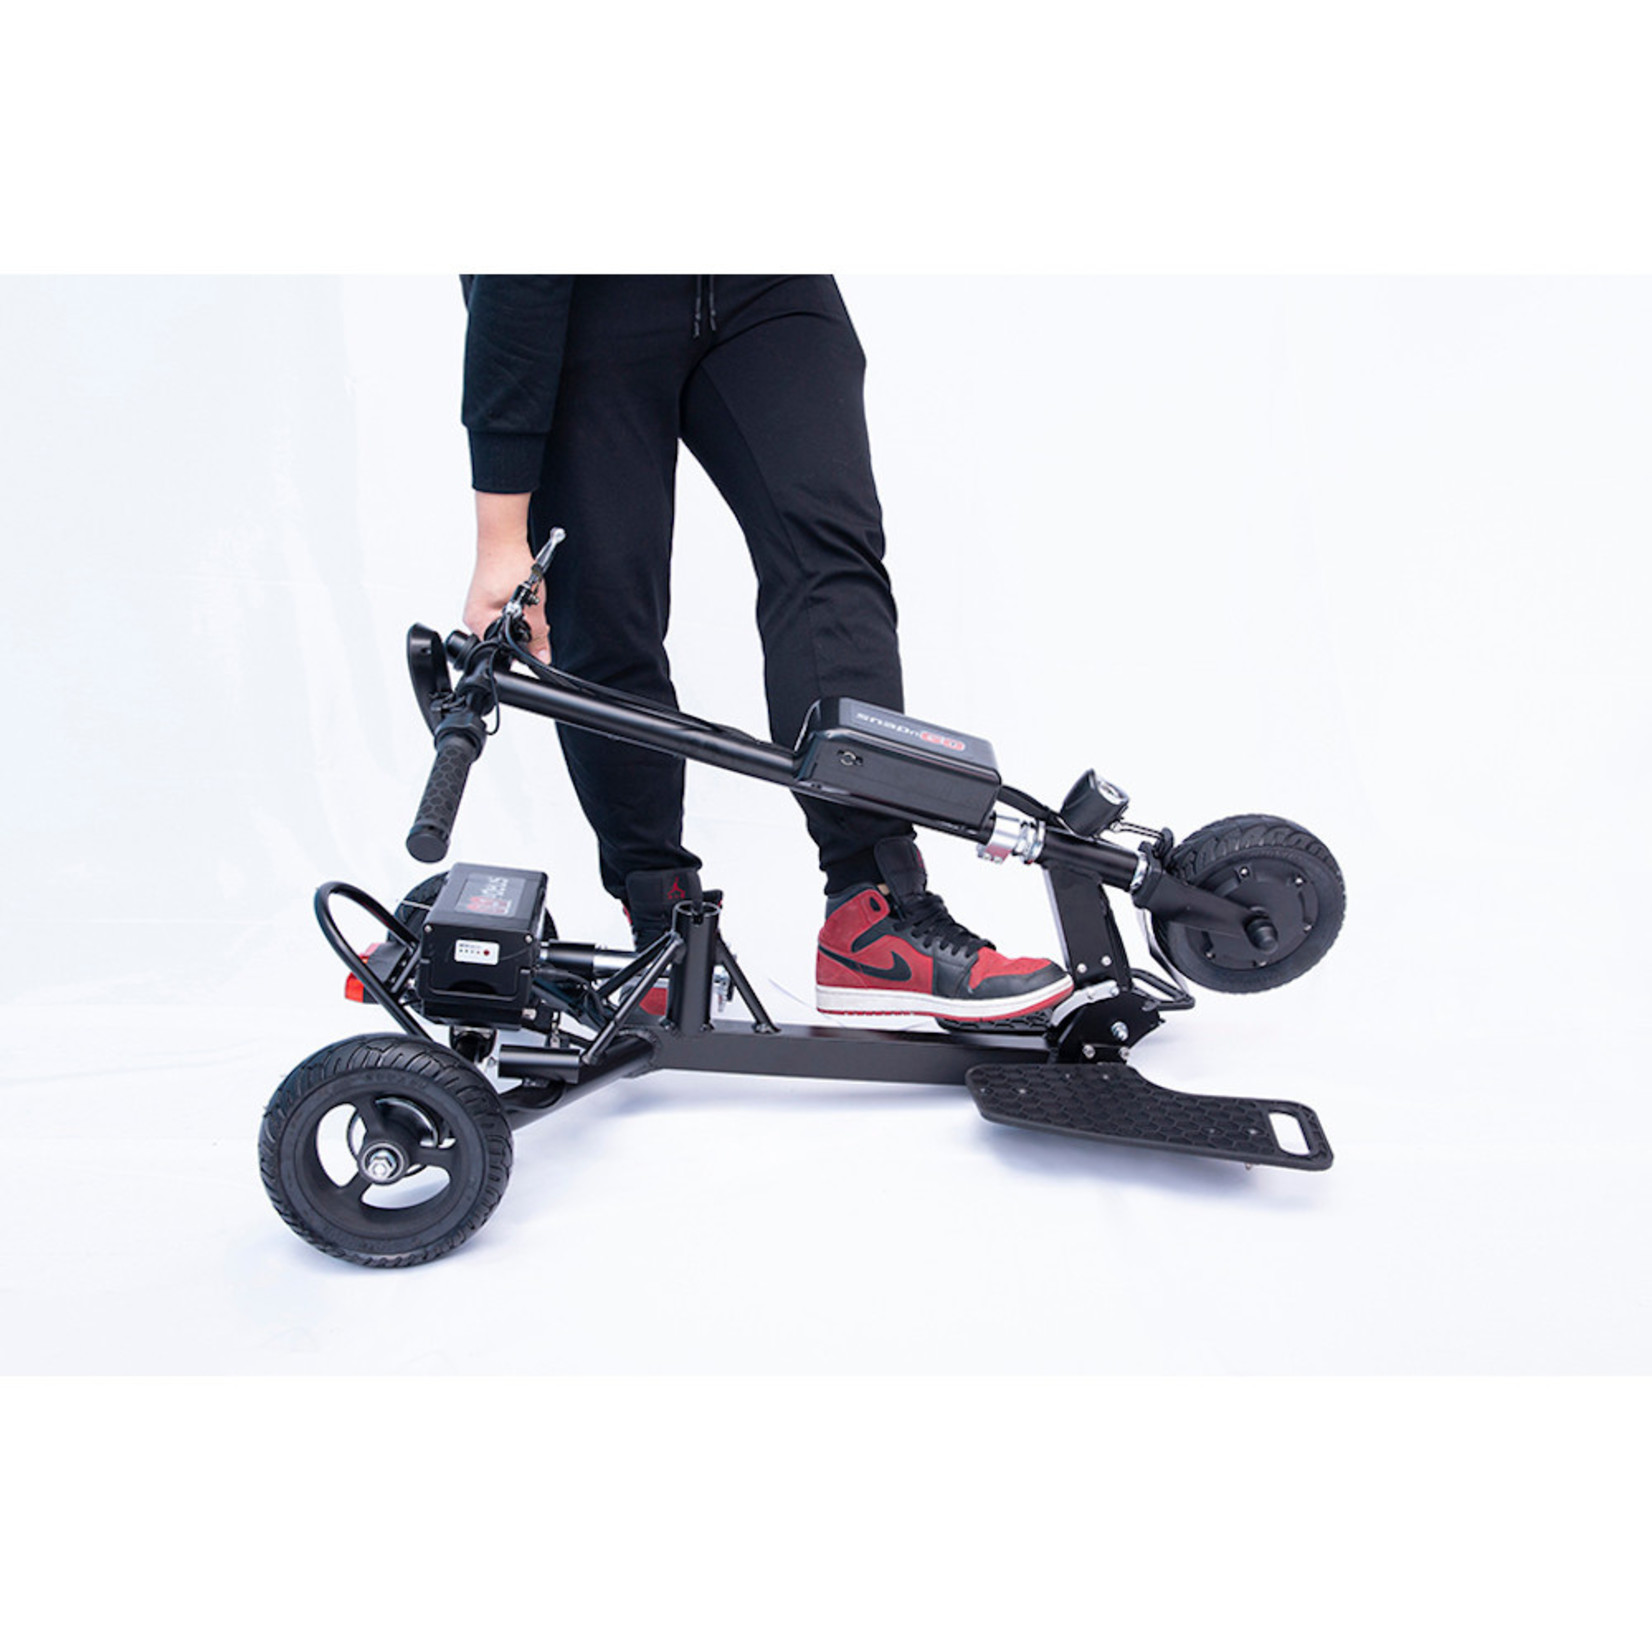 Snap N Go Folding Scooter